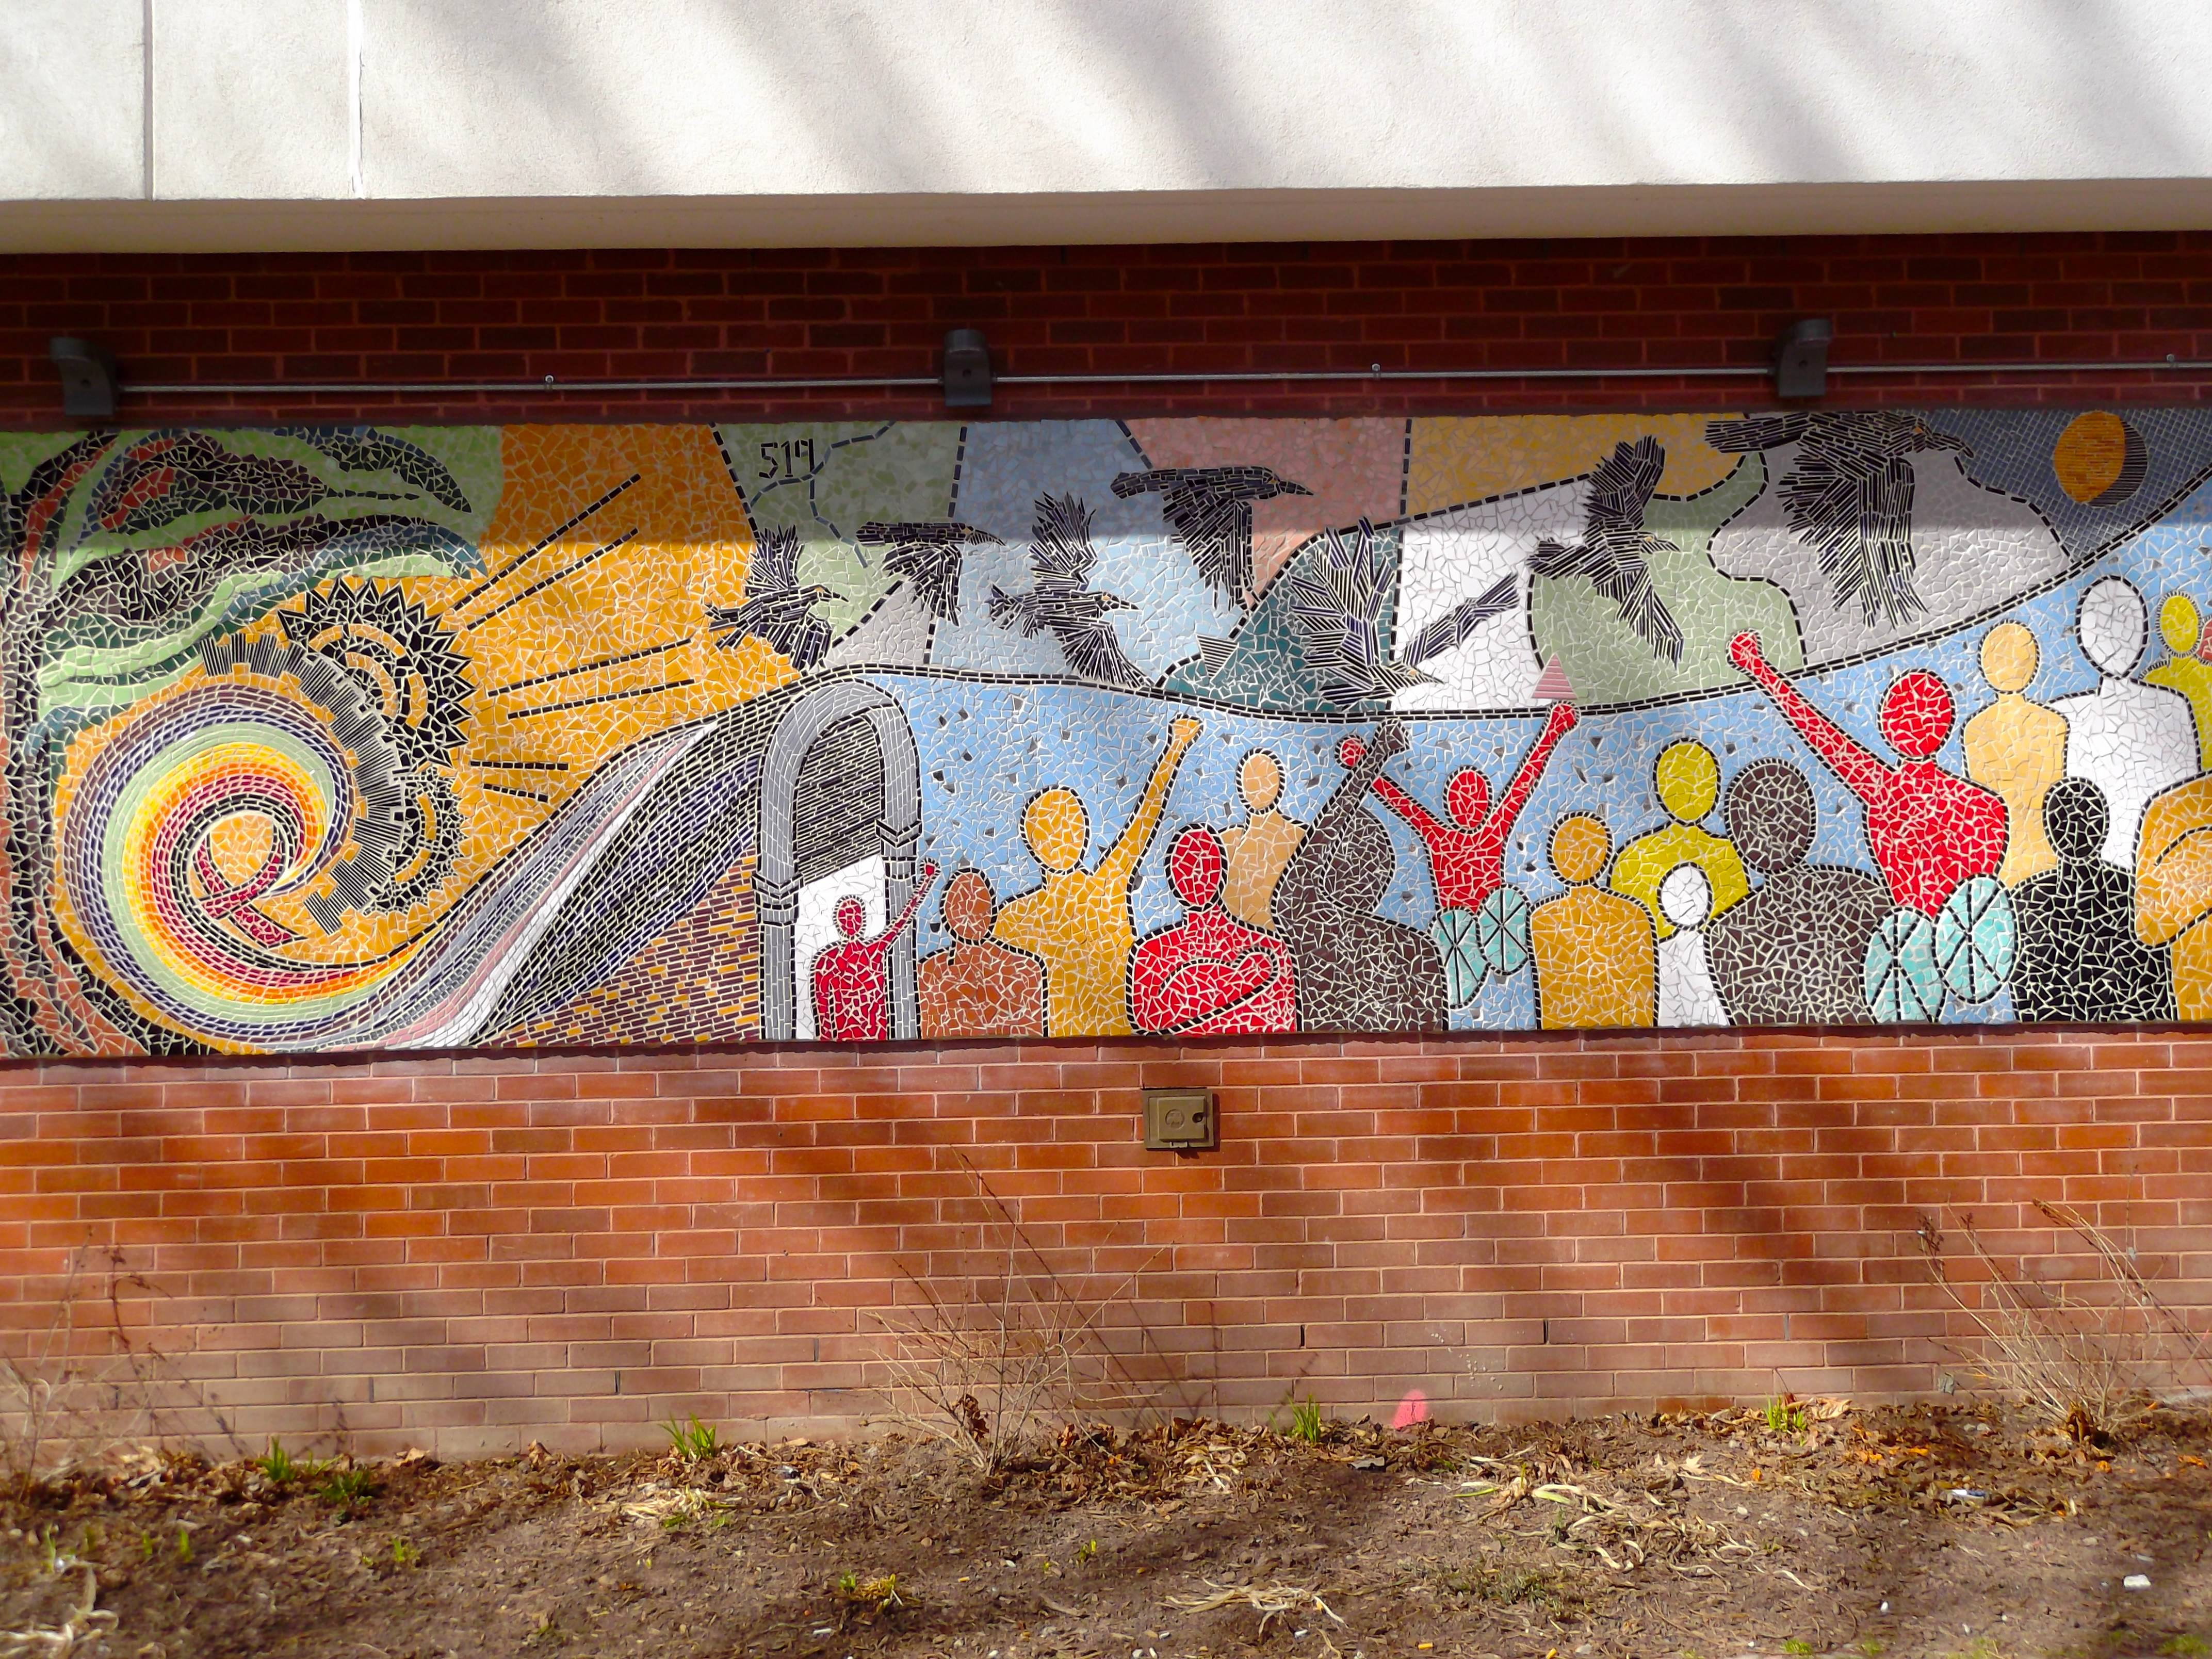 [Image description: A photograph of the full-length rectangular mural running on a brick wall. The mural shows people of all colours and abilities standing together while black birds fly overhead in a colourful sky with a sun, a spiral rainbow, and a red AIDS ribbon all included in the design]